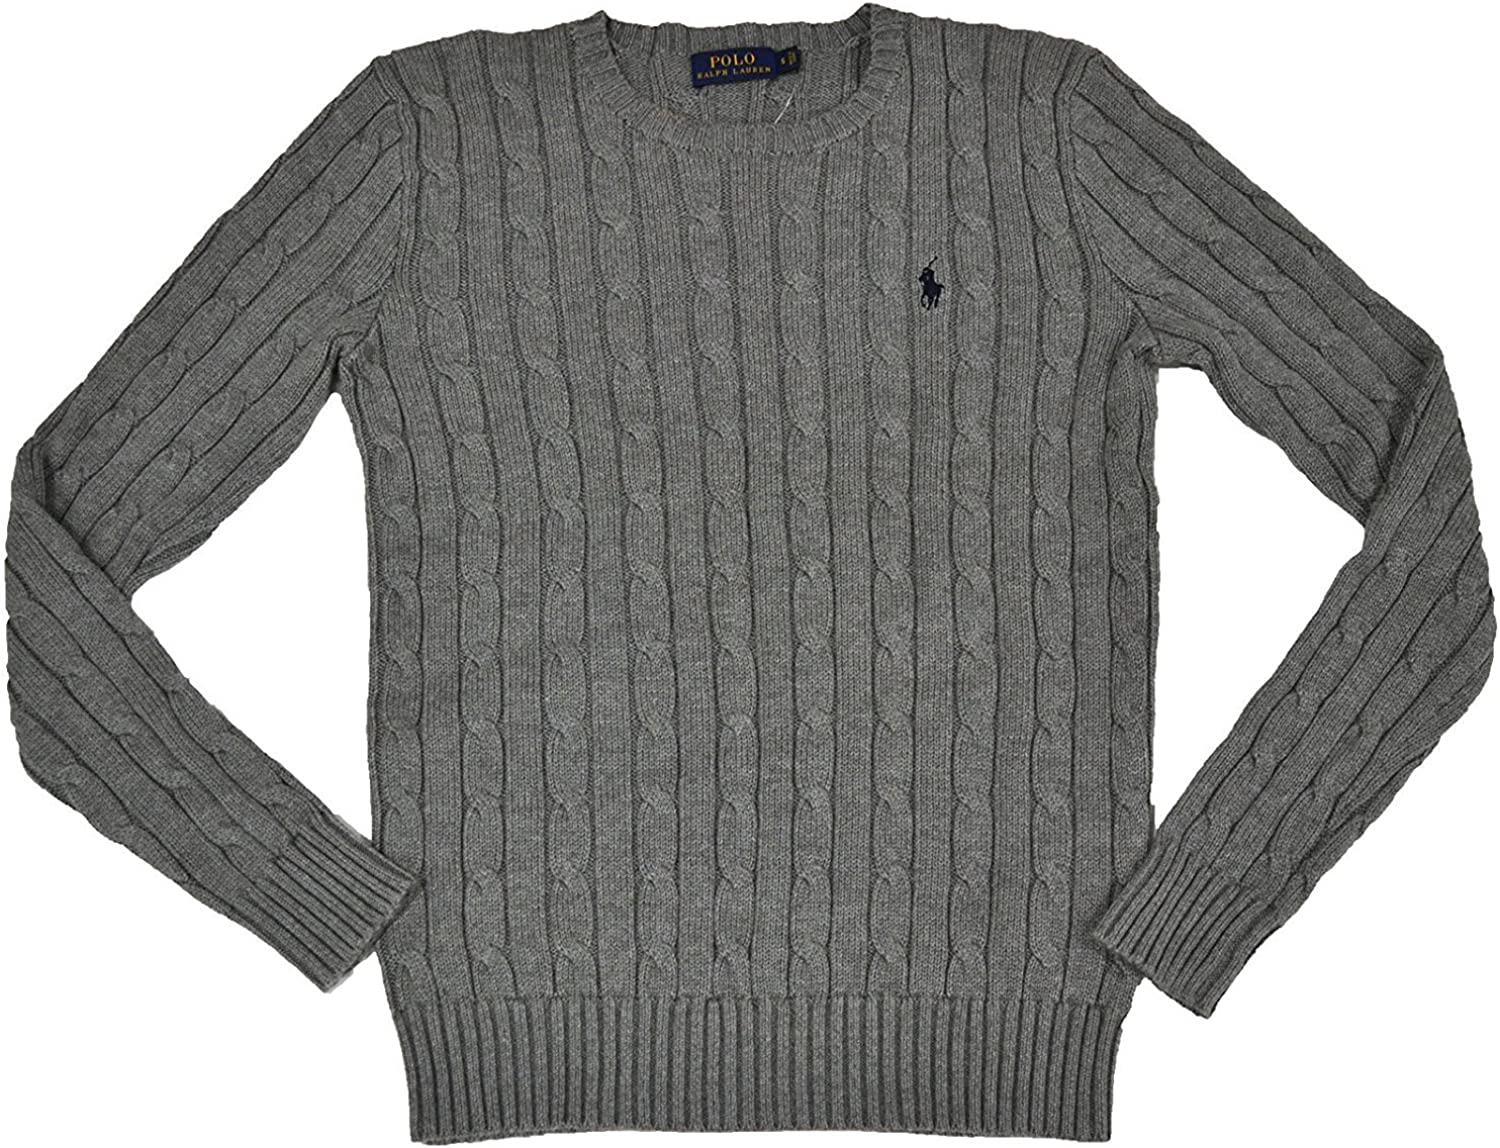 Ralph Lauren Women's Cable Knit Crew Neck Sweater (Fawn Grey, Small)